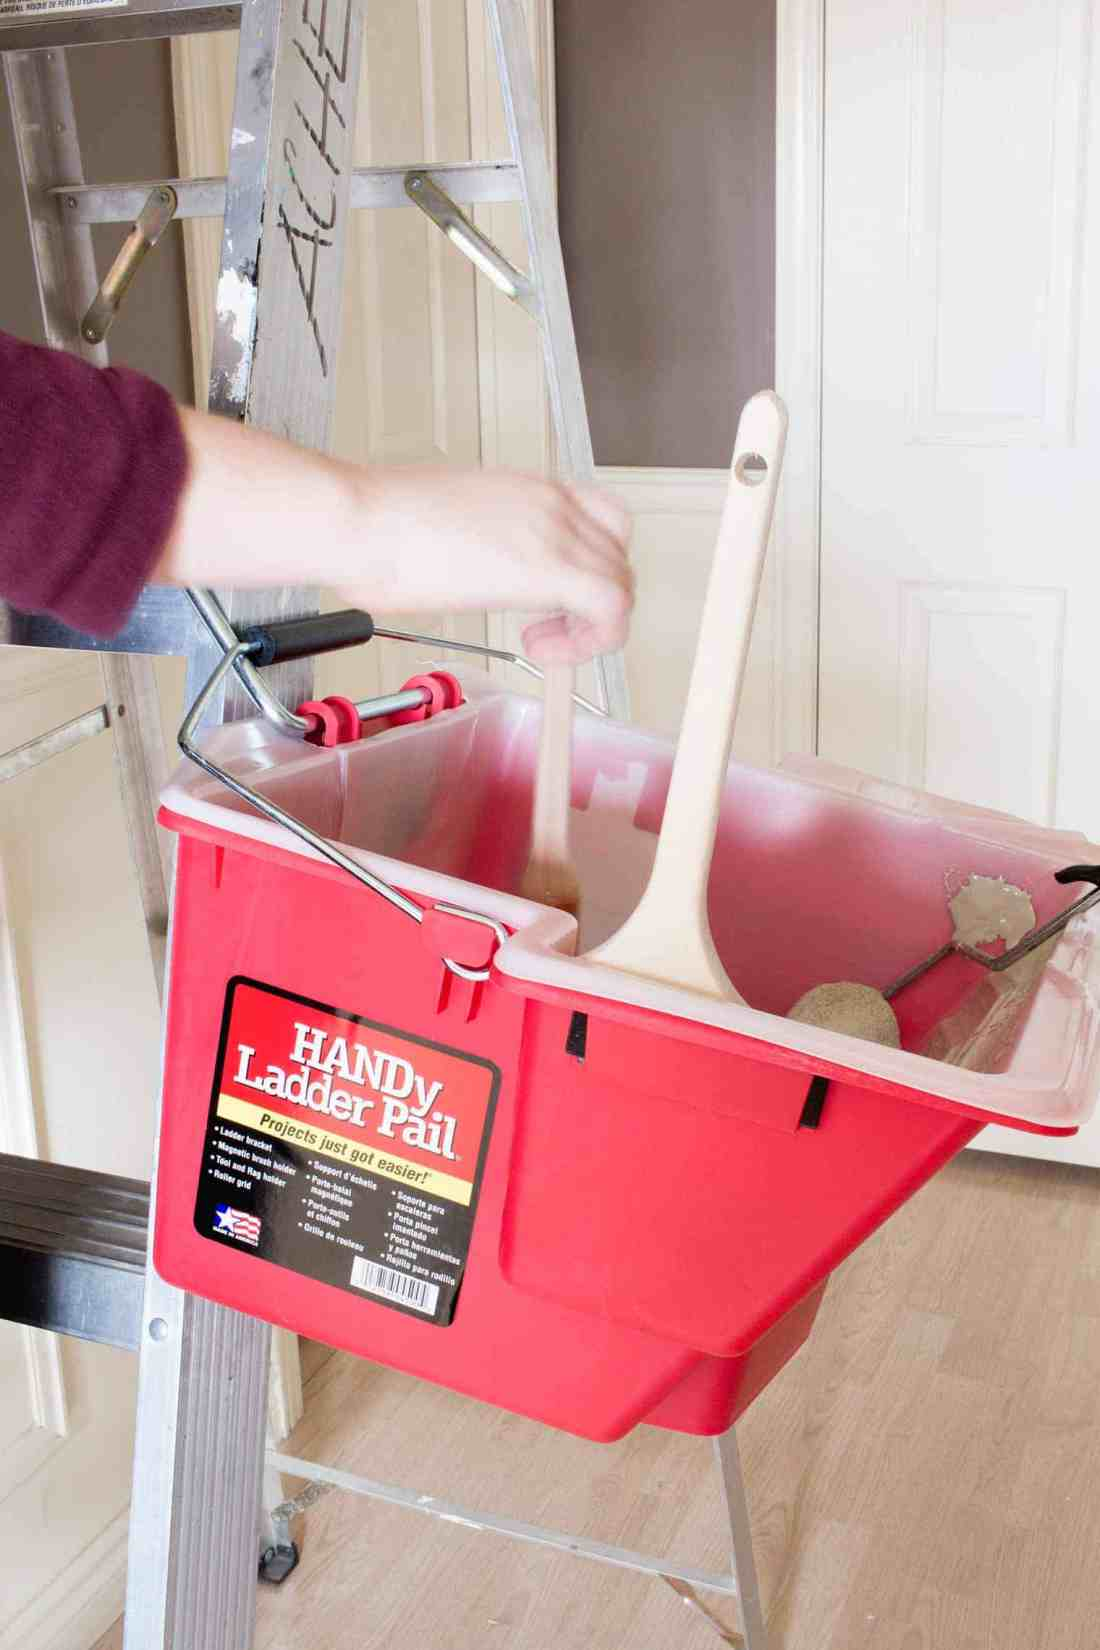 HANDy Paint Ladder Pail!